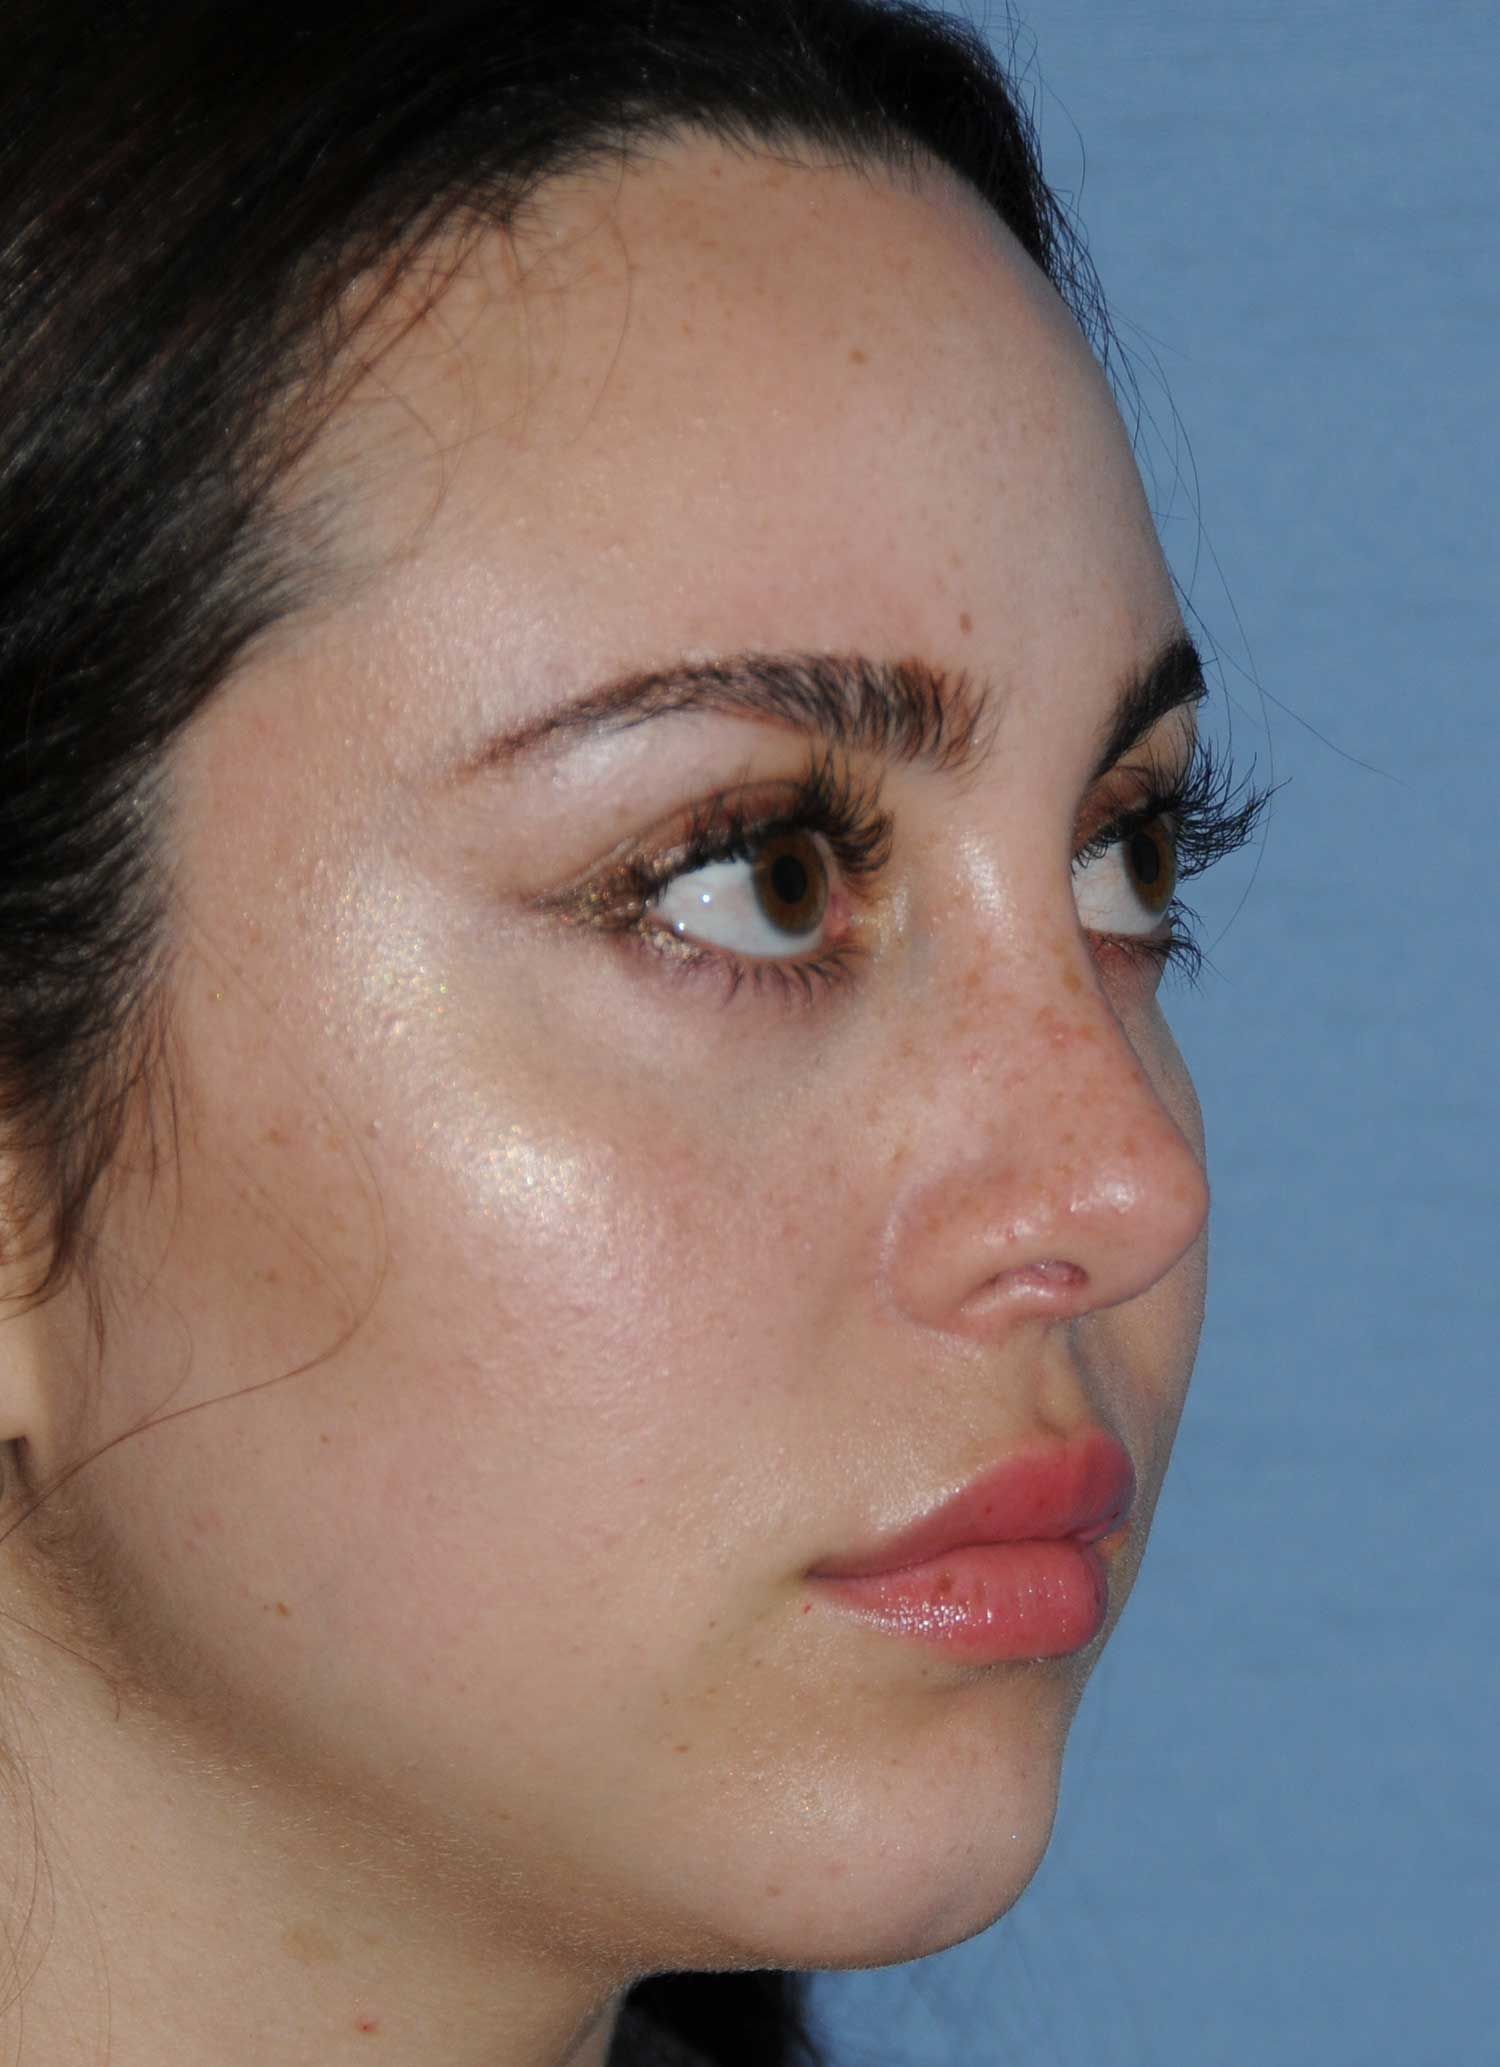 Rhinoplasty for a Bulbous Nasal Tip, Prominent Nasal Bridge, Short Nose / Columella and Lip Fat Transfer for Small Thin Lateral Upper Outer Lips After Right Oblique Close Up View